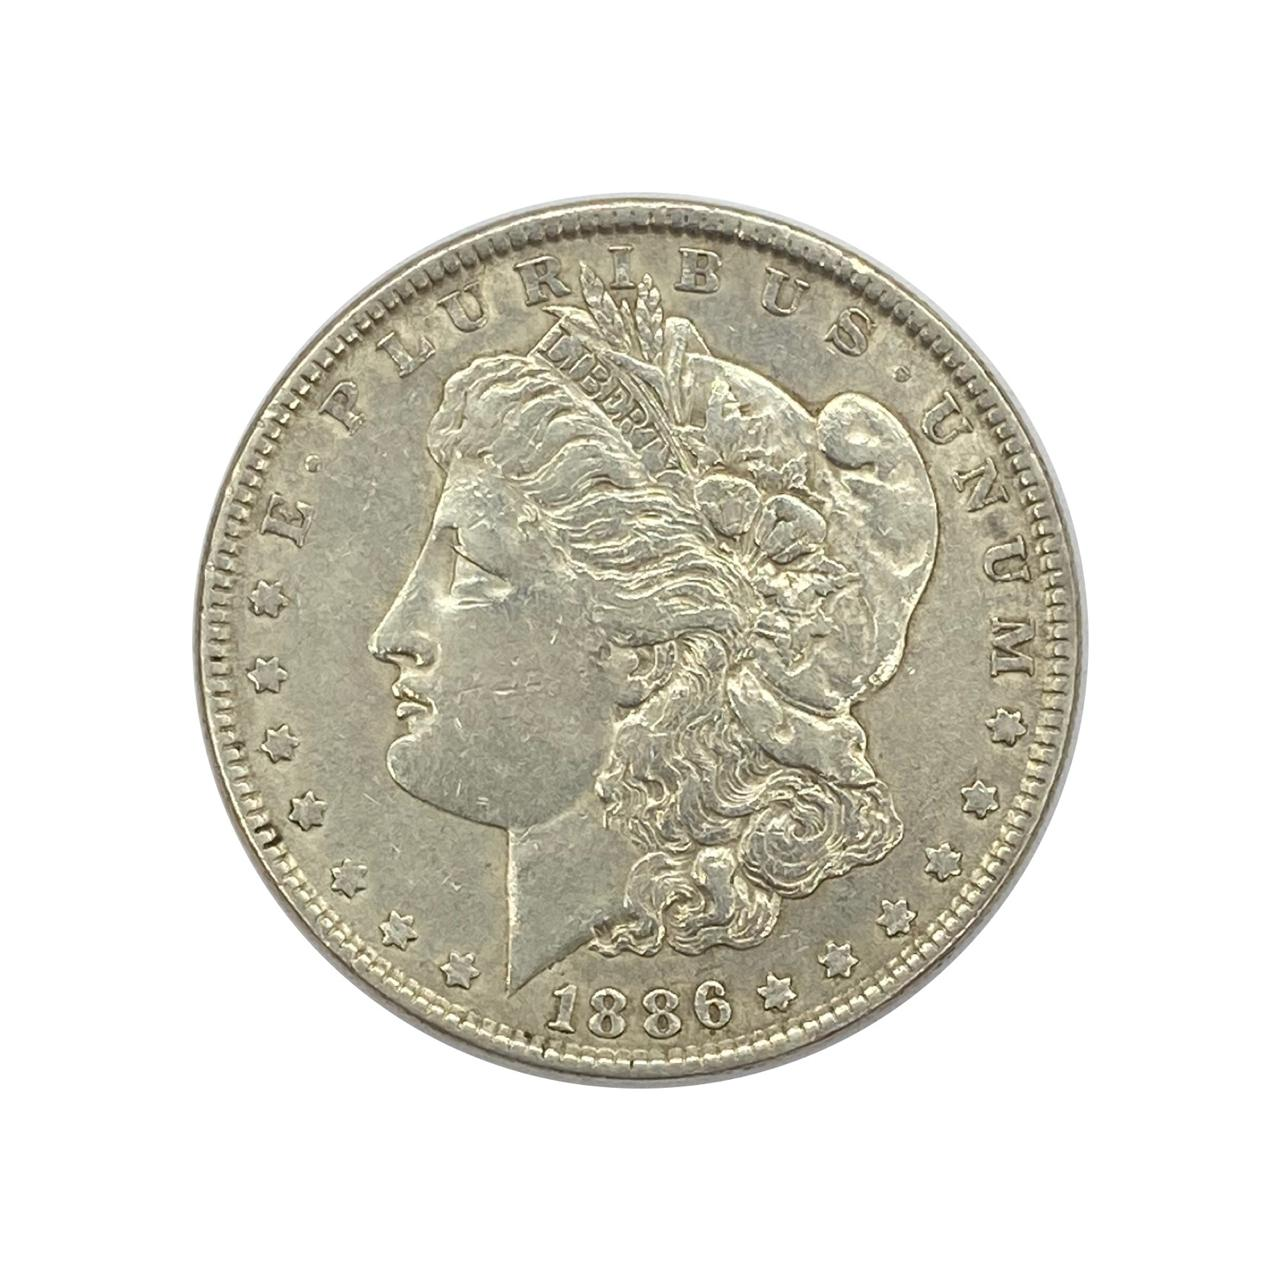 1 Dólar Morgan Dollar-1886